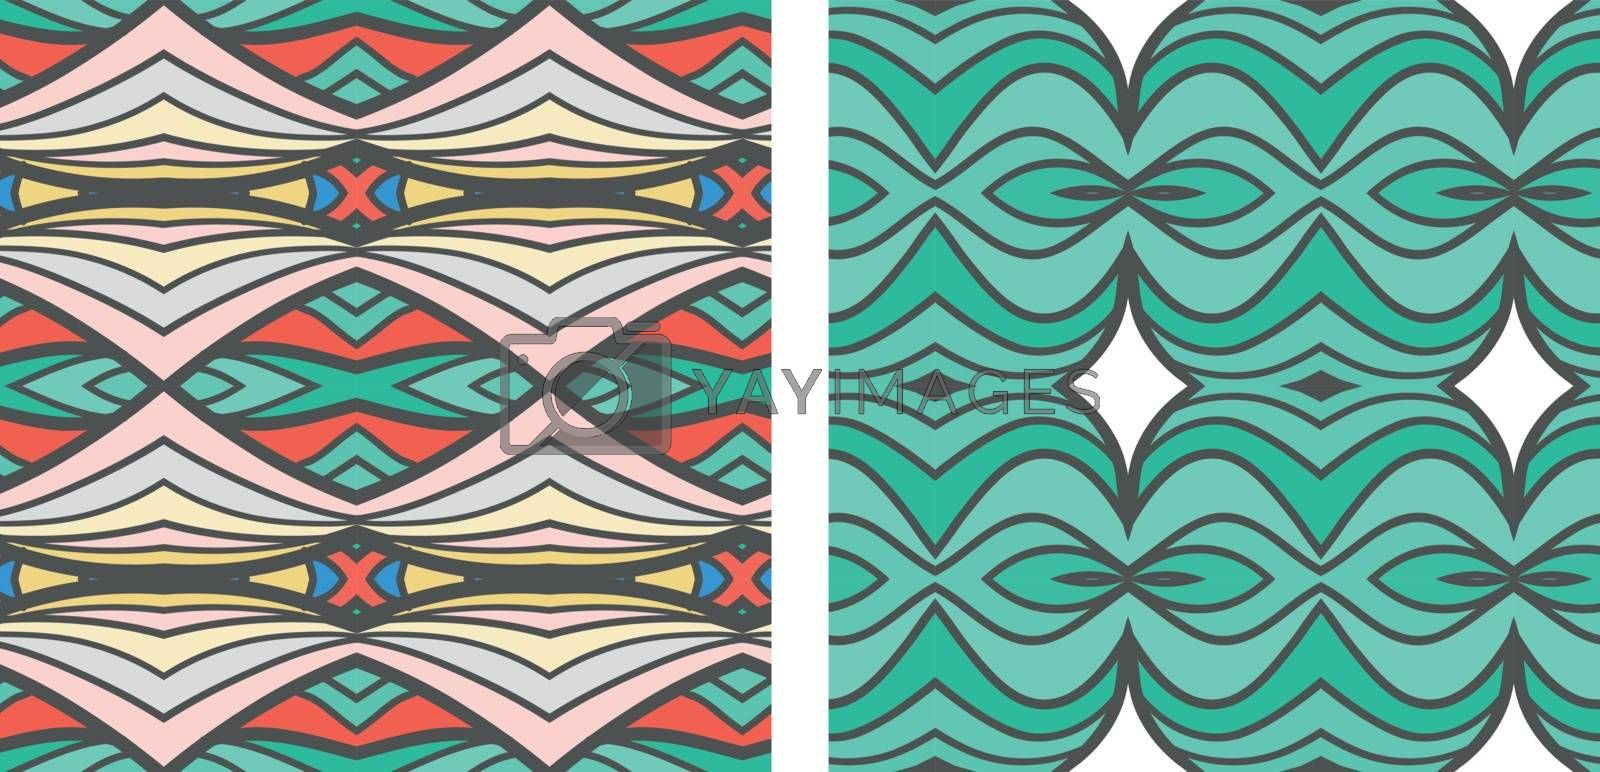 Abstract seamless ornament pattern. the kaleidoscope effect. Ethnic damask motif. Vintage style pattern. Vector illustration